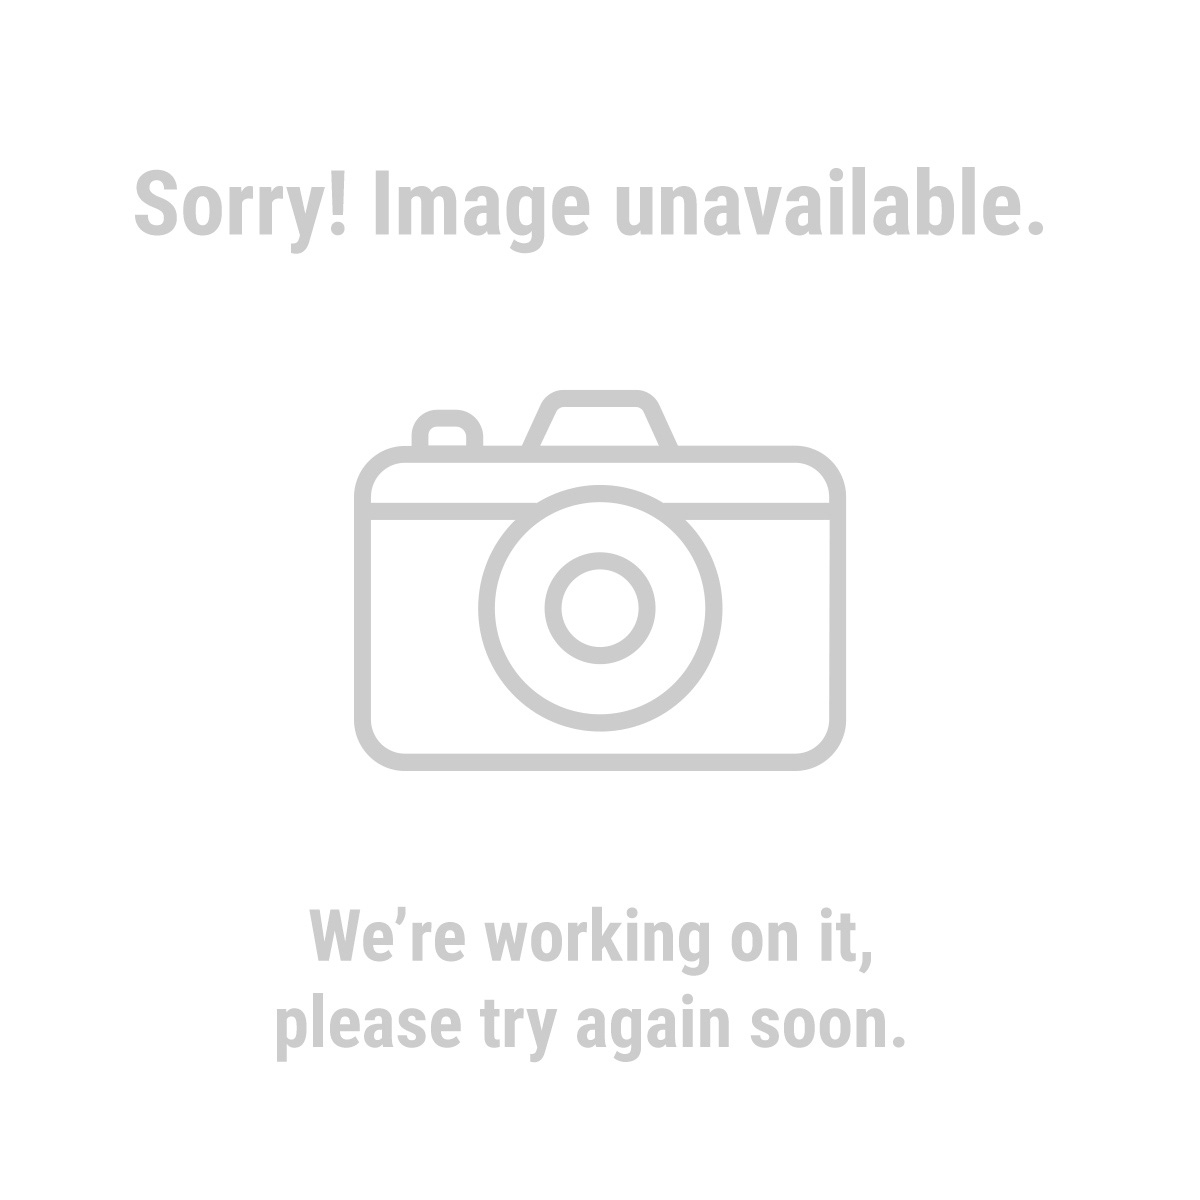 Krause & Becker 61497 2 in. Chip Brush